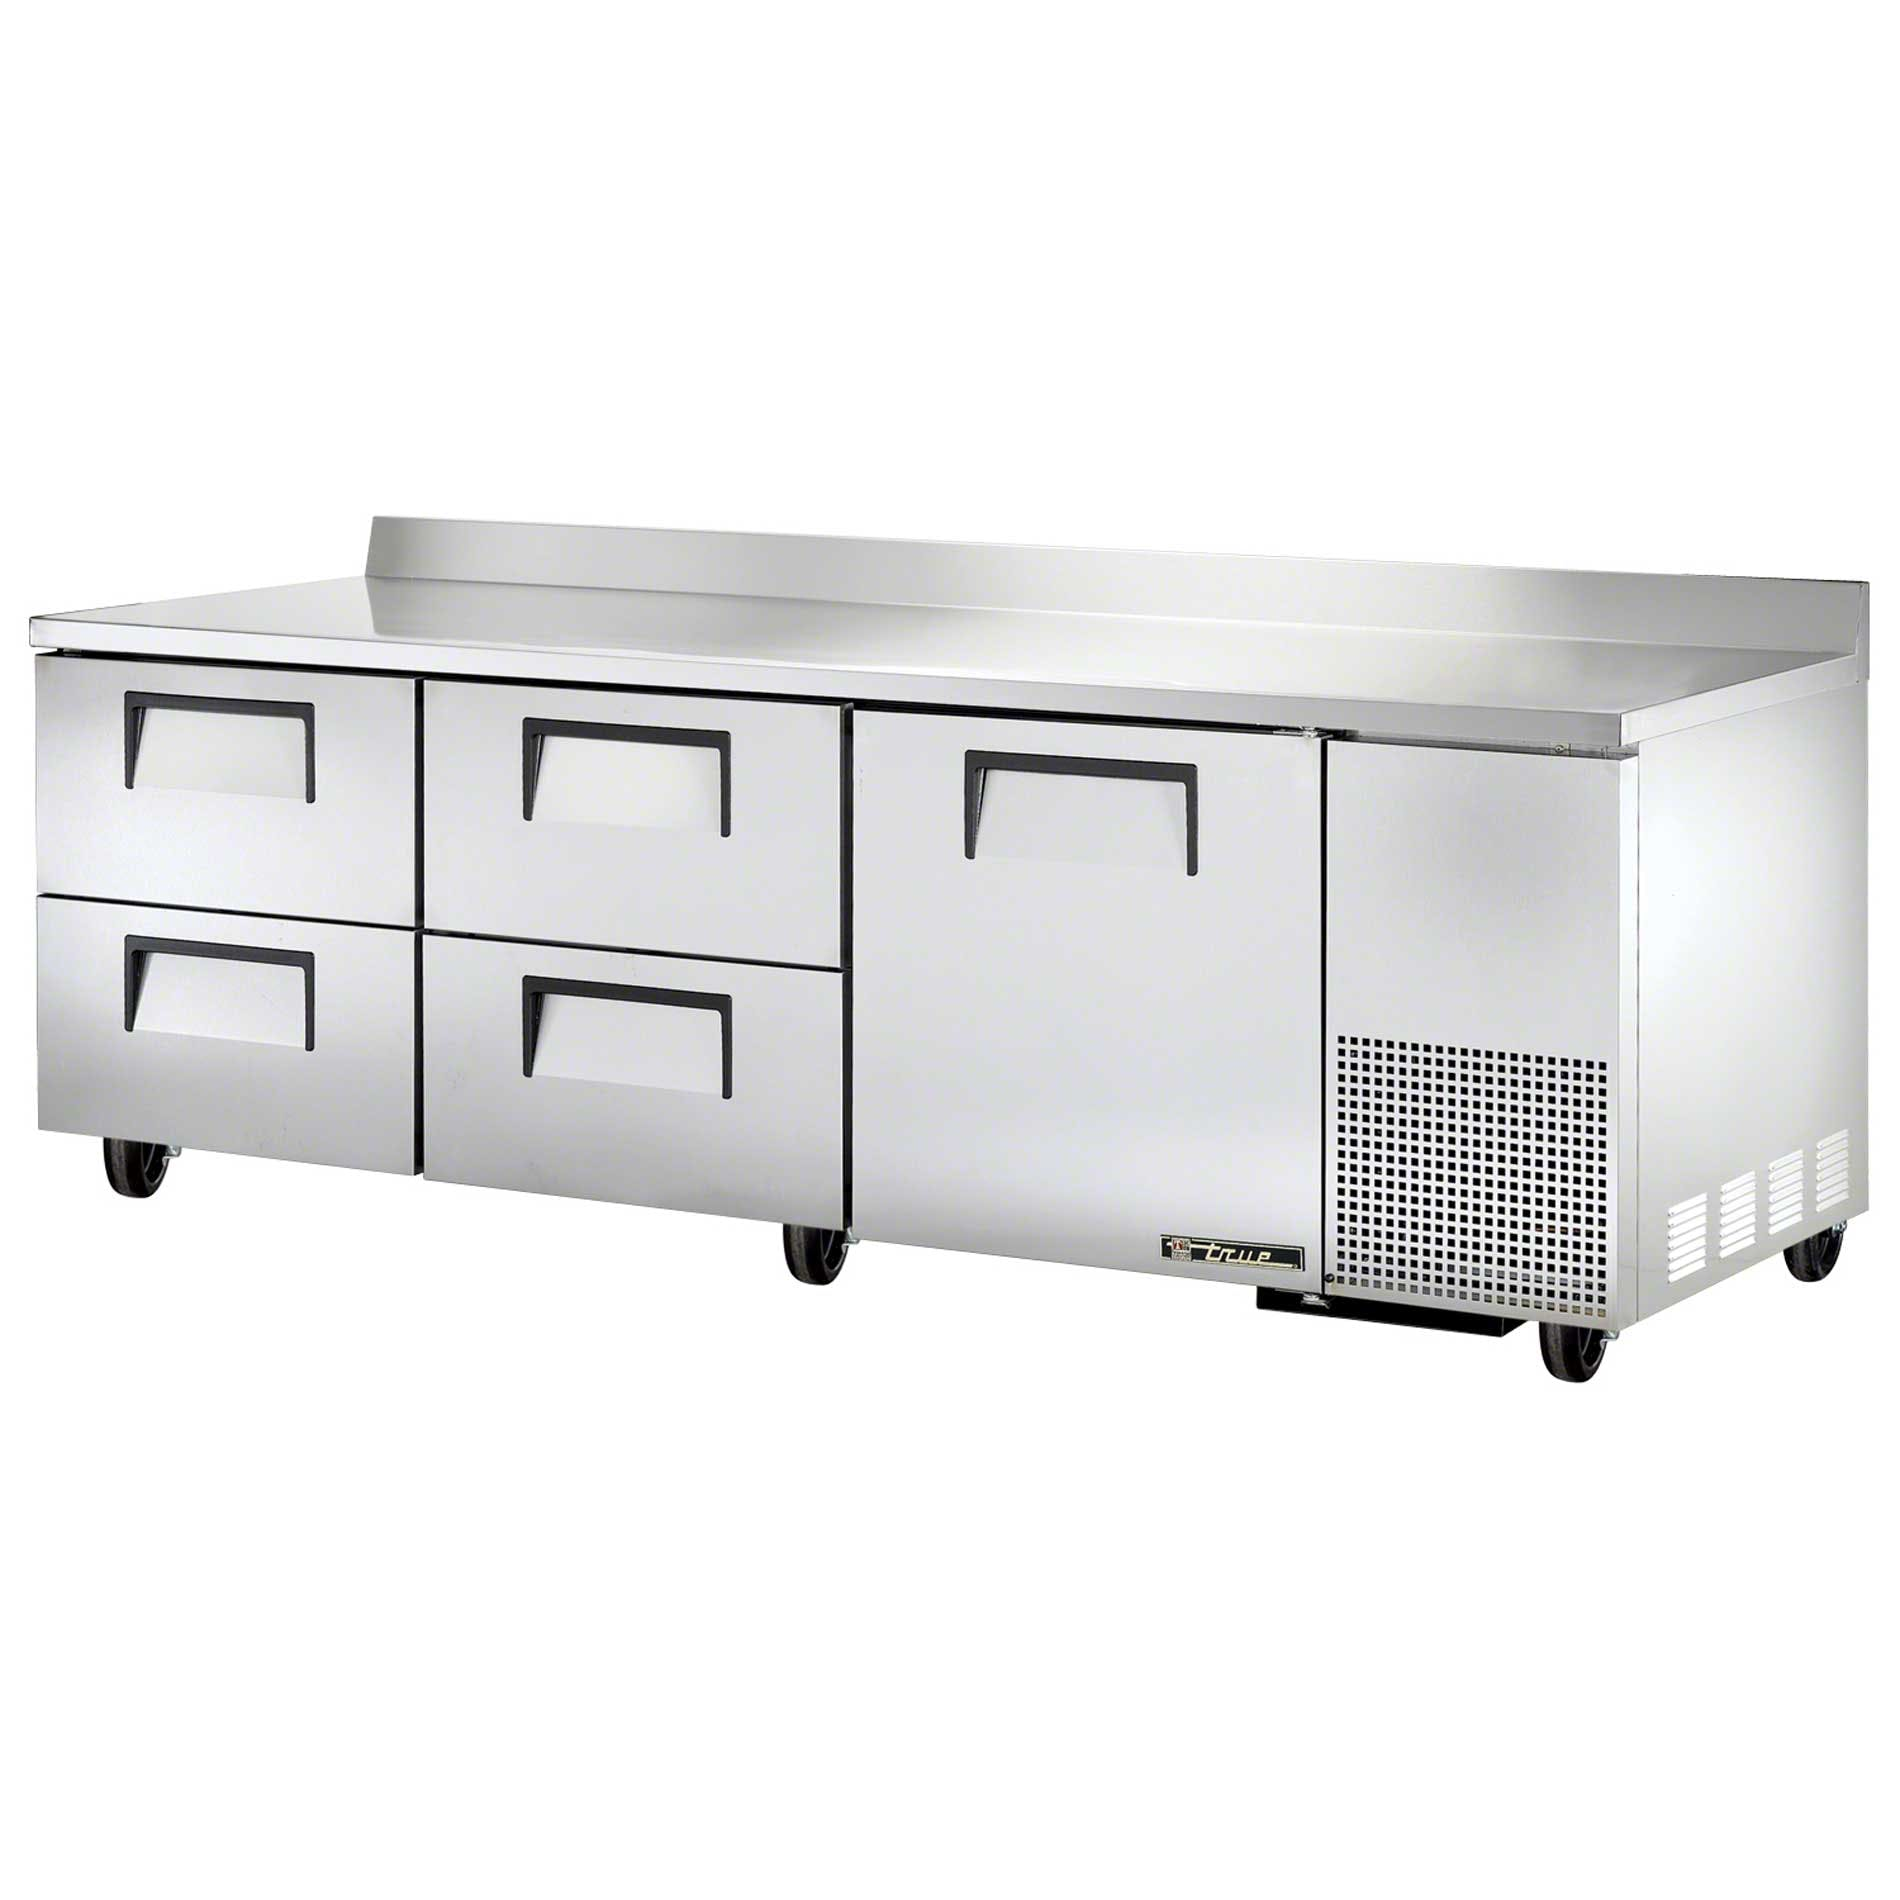 "True - TWT-93D-4 93-1/4"" Worktop Refrigerator w/Drawers Commercial refrigerator sold by Food Service Warehouse"